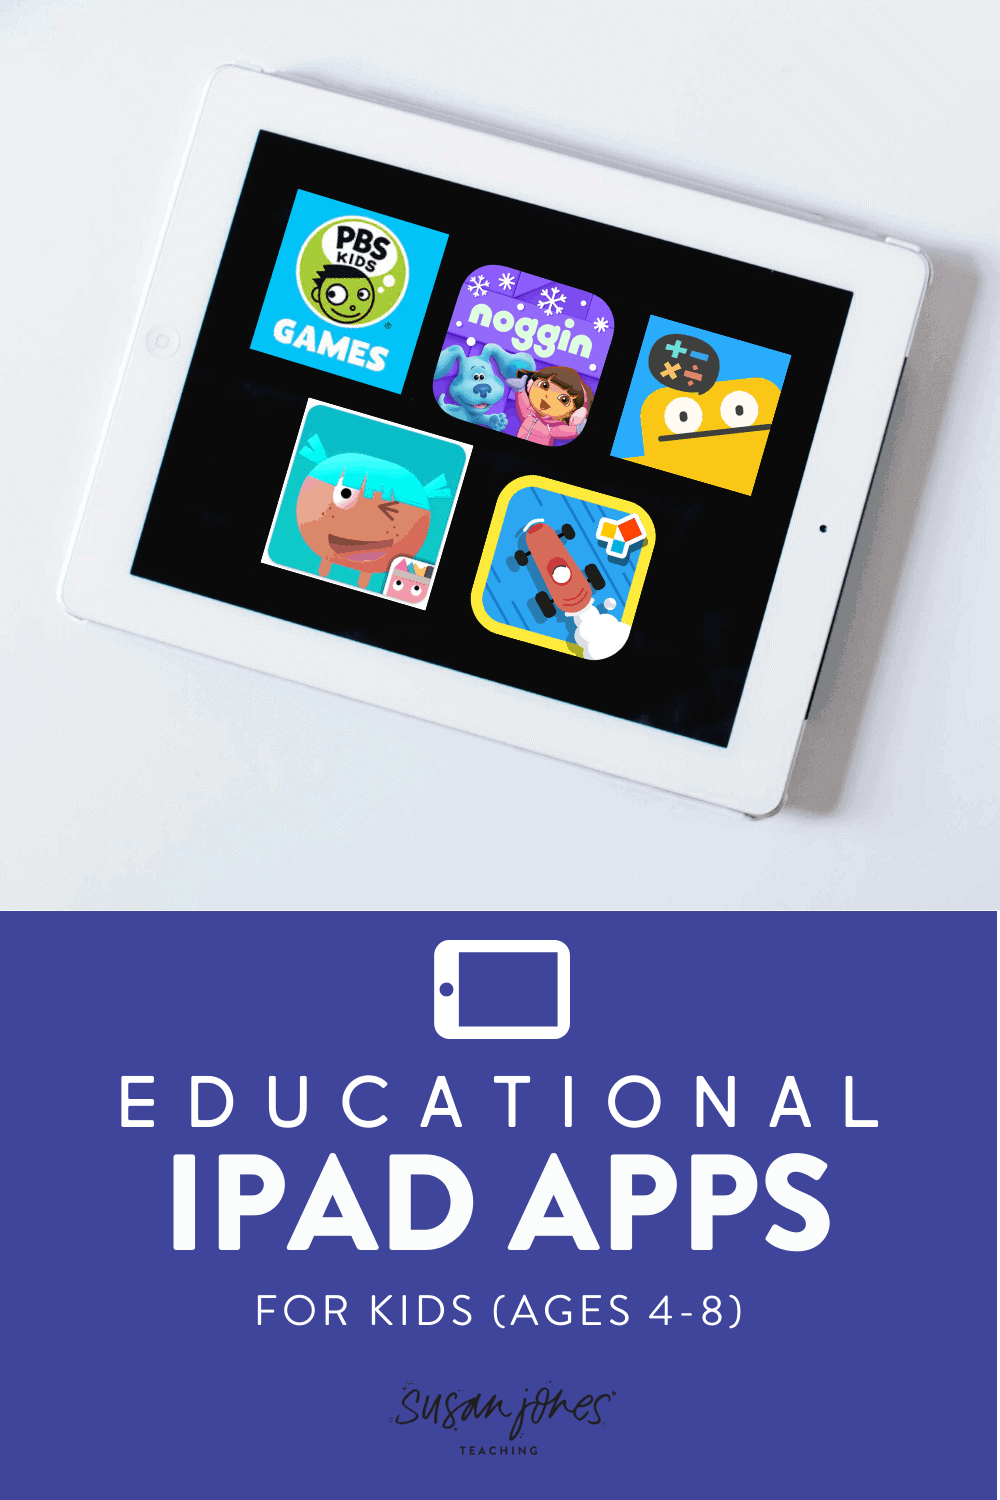 Check out my favorite educational game apps for students ages 4-8! All of these are fun, entertaining, and can be played without the need for constant supervision!